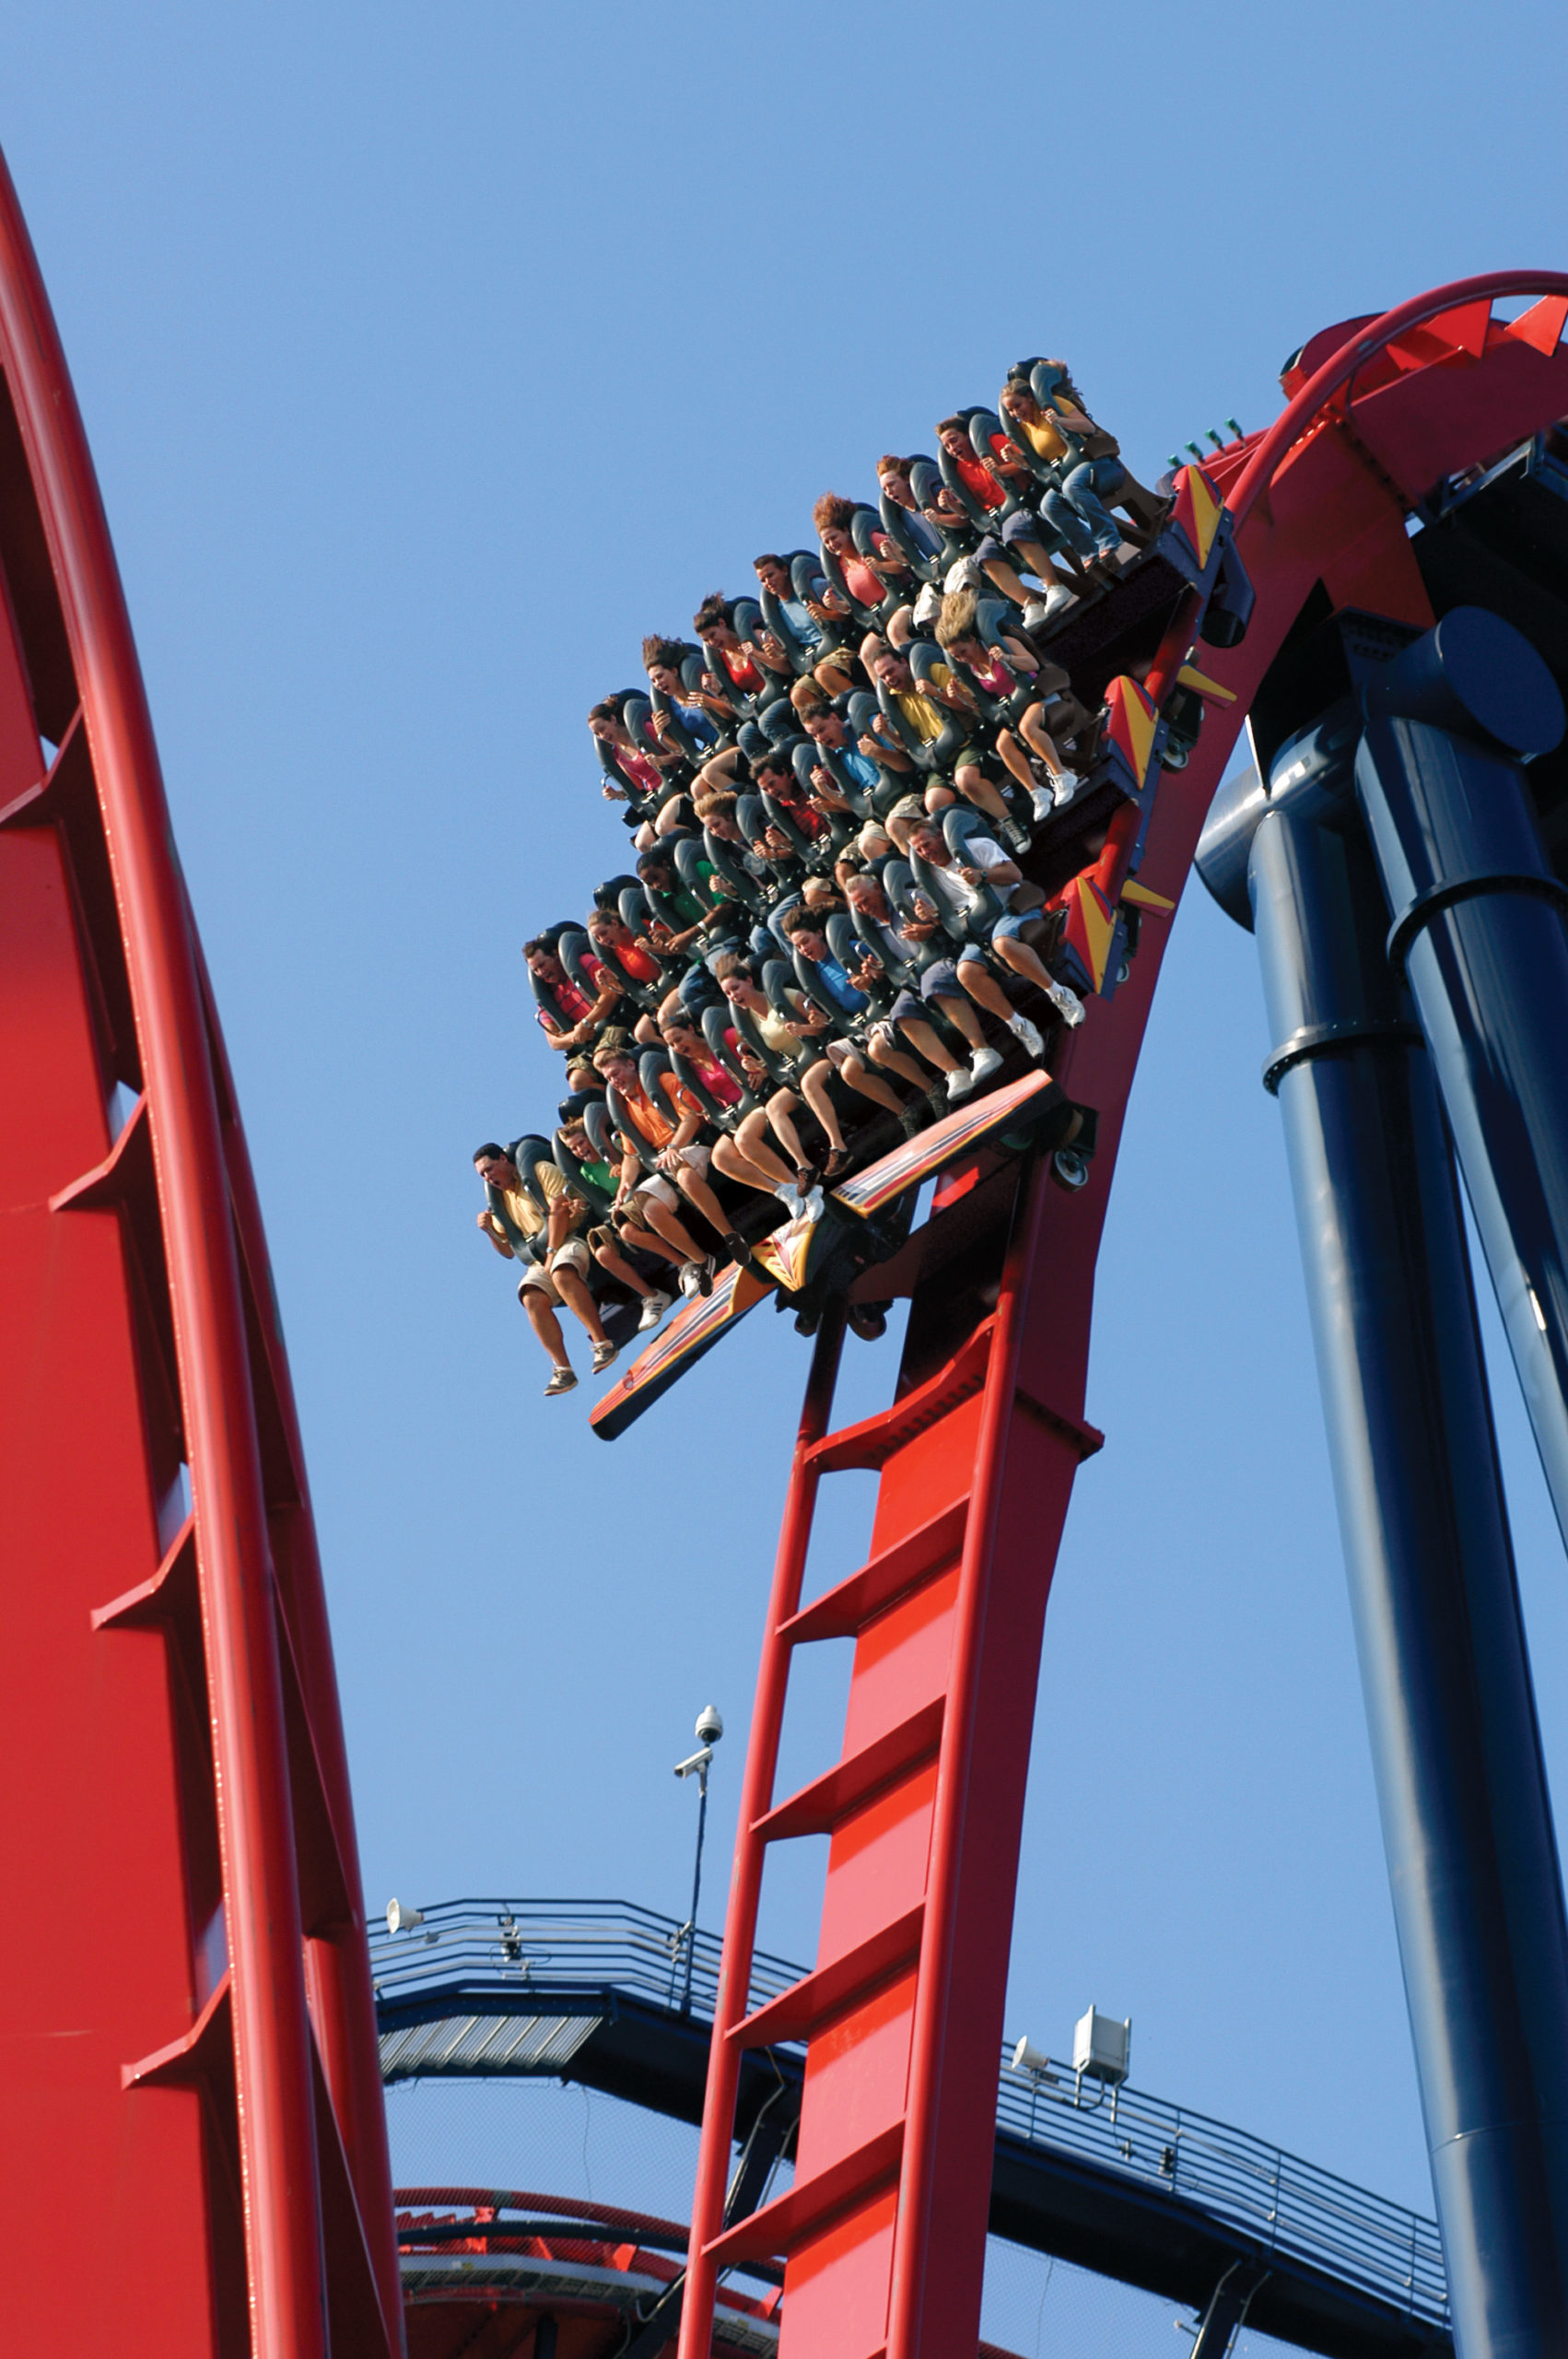 Sheikra at Busch Gardens Tampa Bay